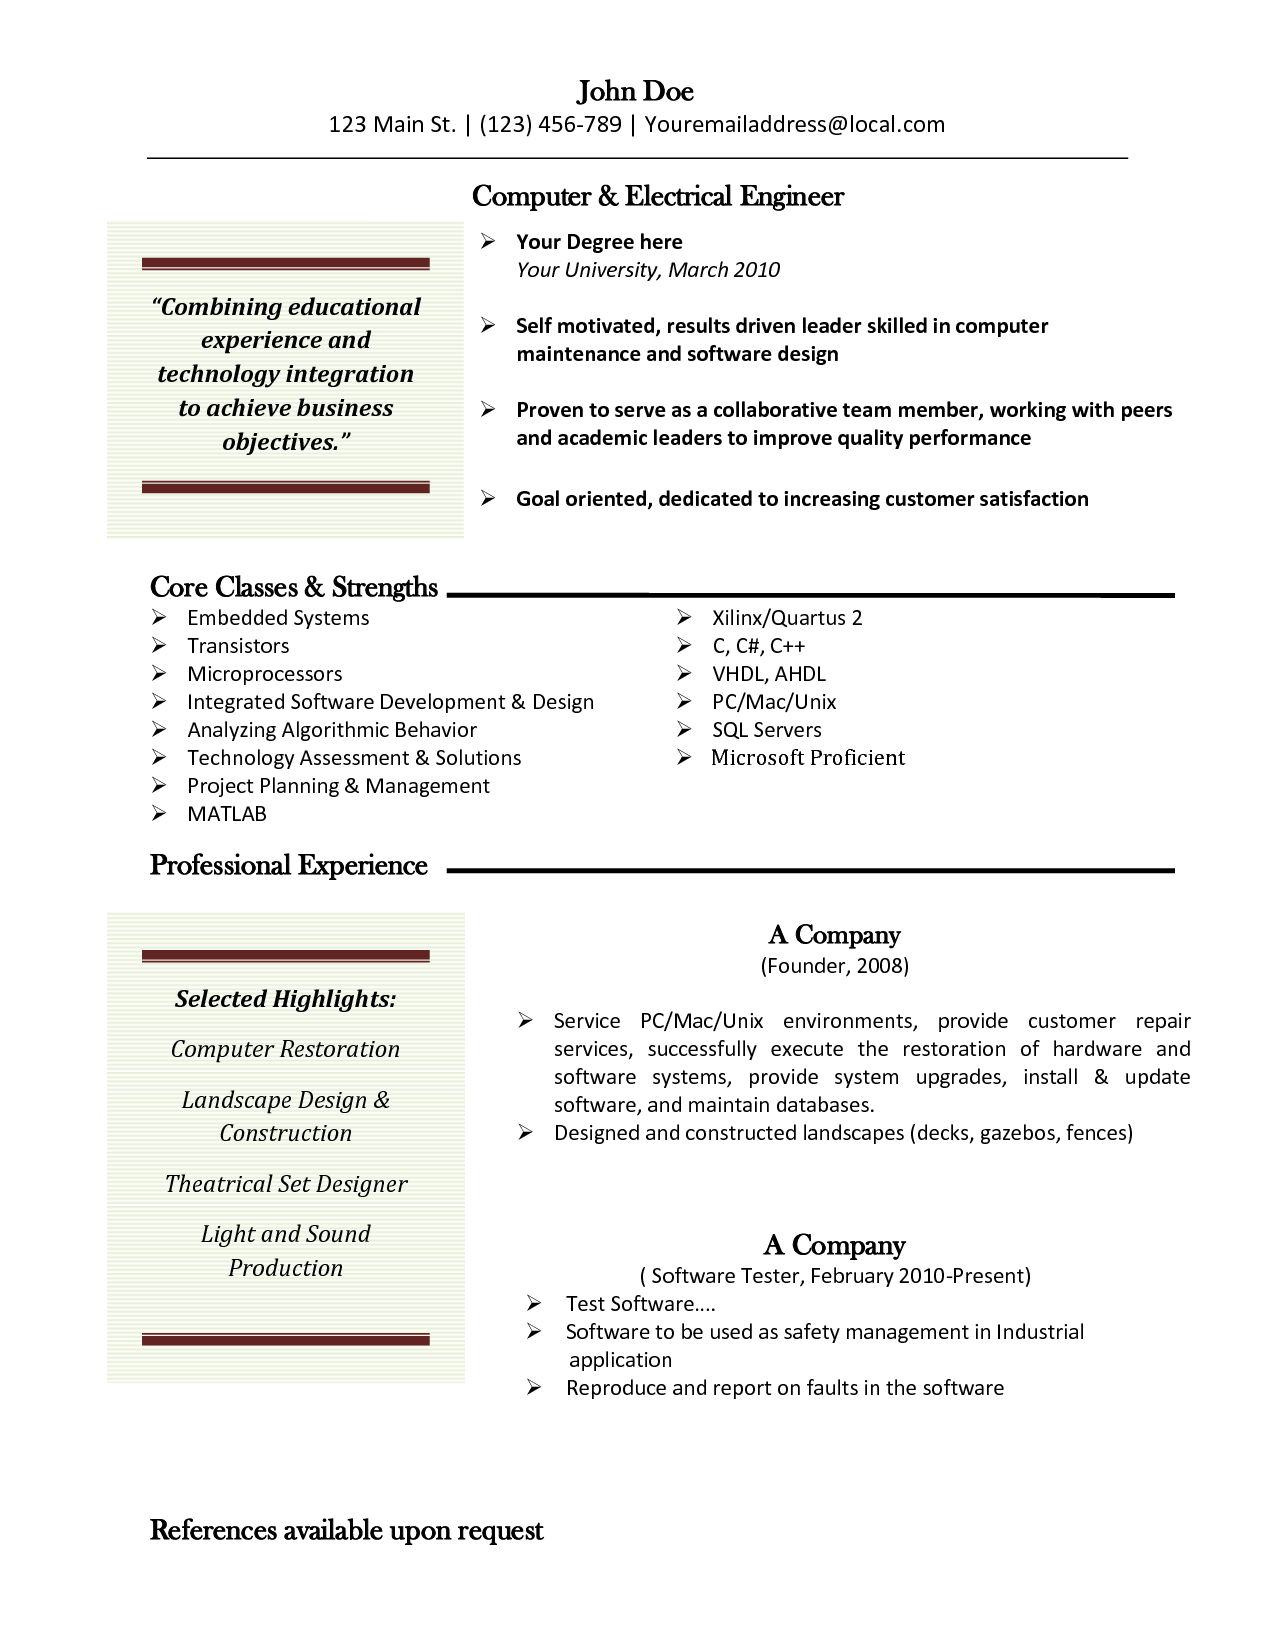 Free Resumes Templates To Download Brilliant Freeresumetemplatesformaccqjykibi 1275×1650  Cv